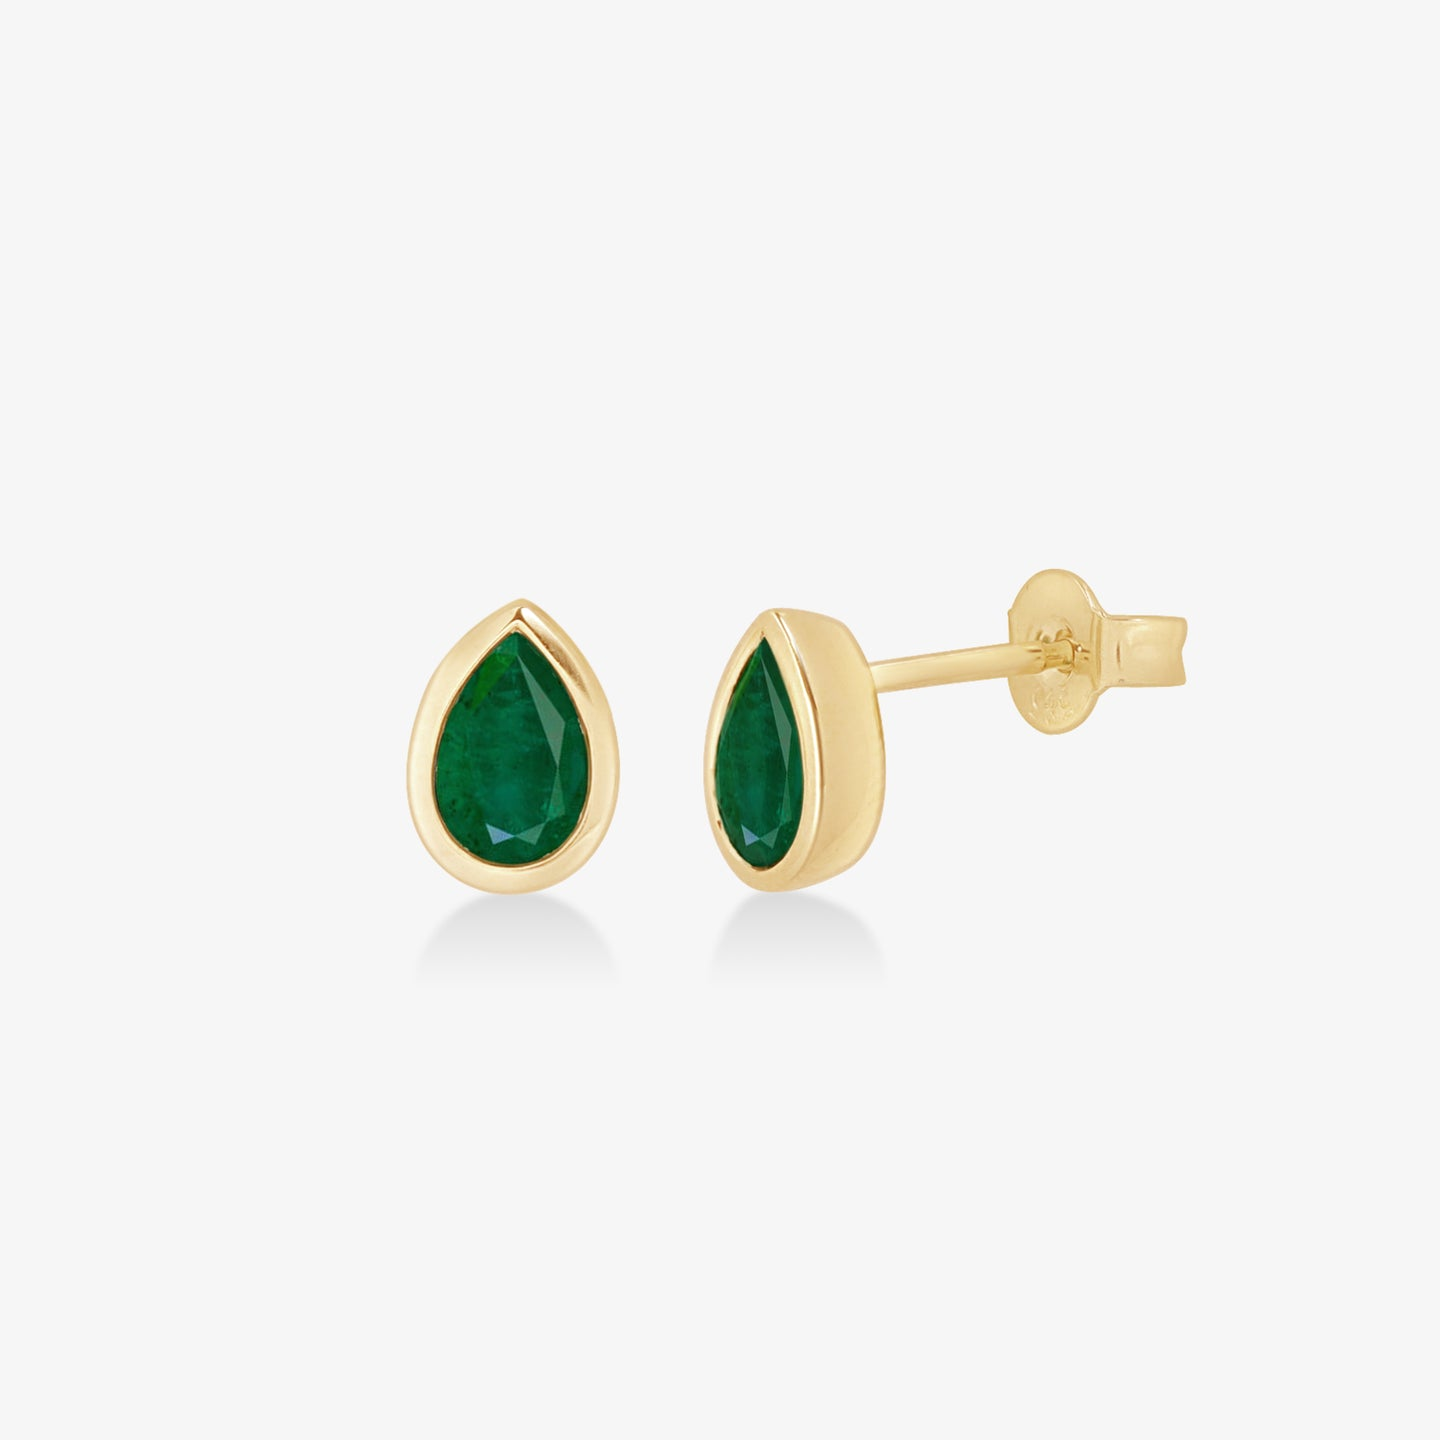 Pear-Shaped Green Agate Stud Earrings in Yellow Gold - estellacollection